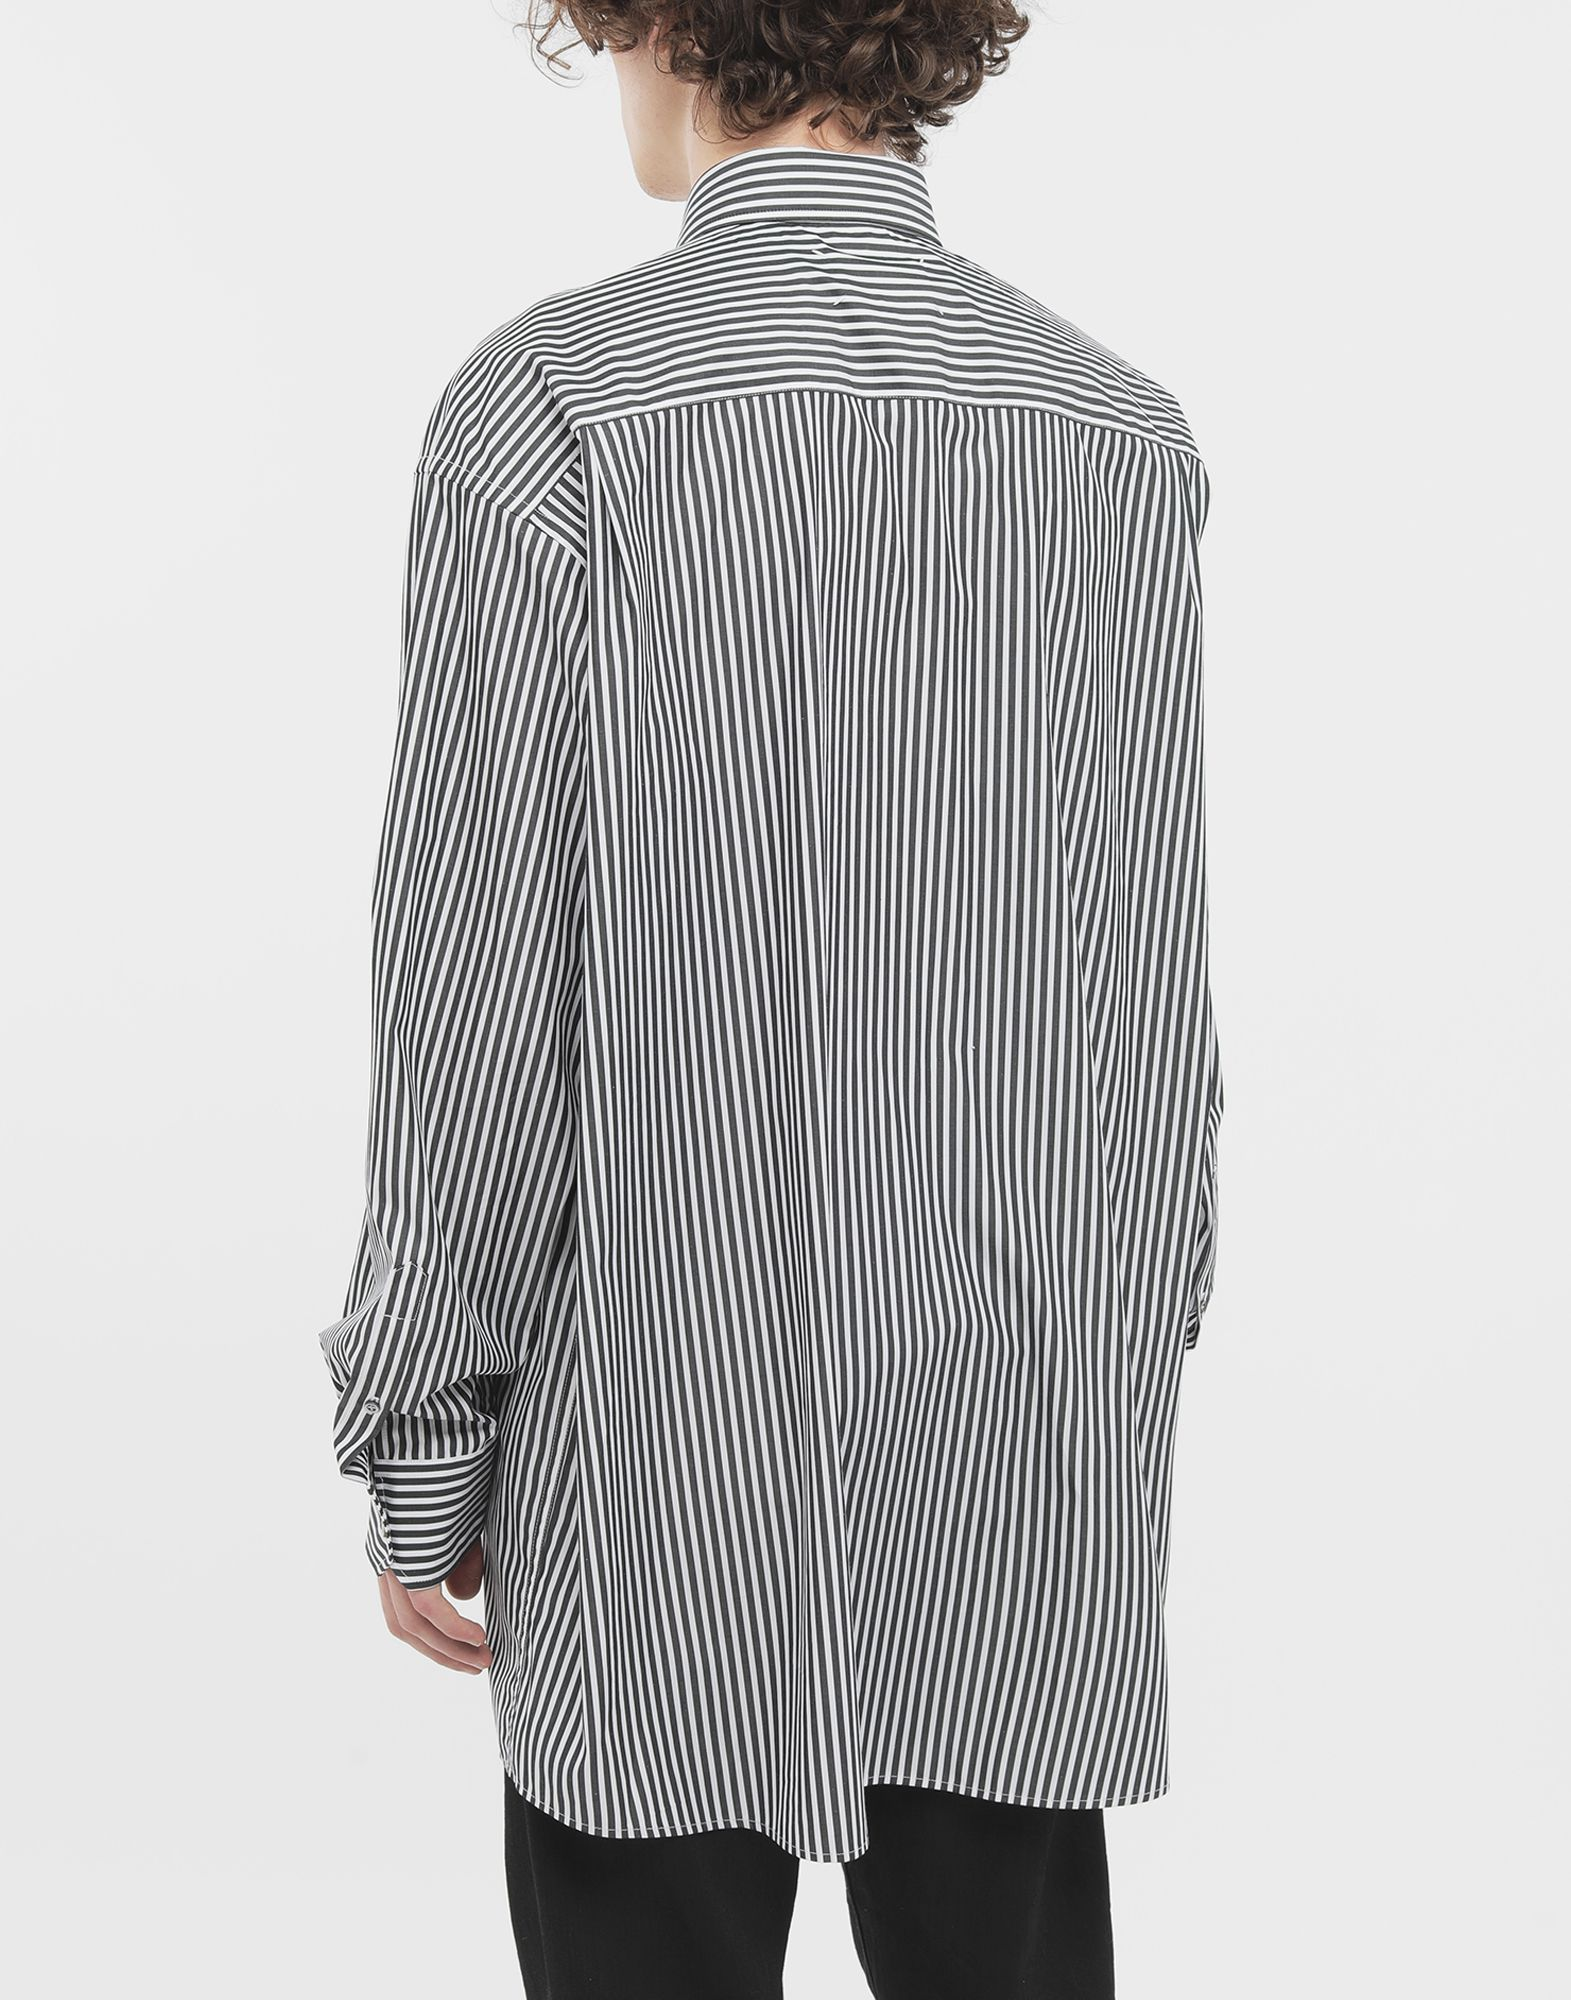 MAISON MARGIELA Striped shirt Long sleeve shirt Man e